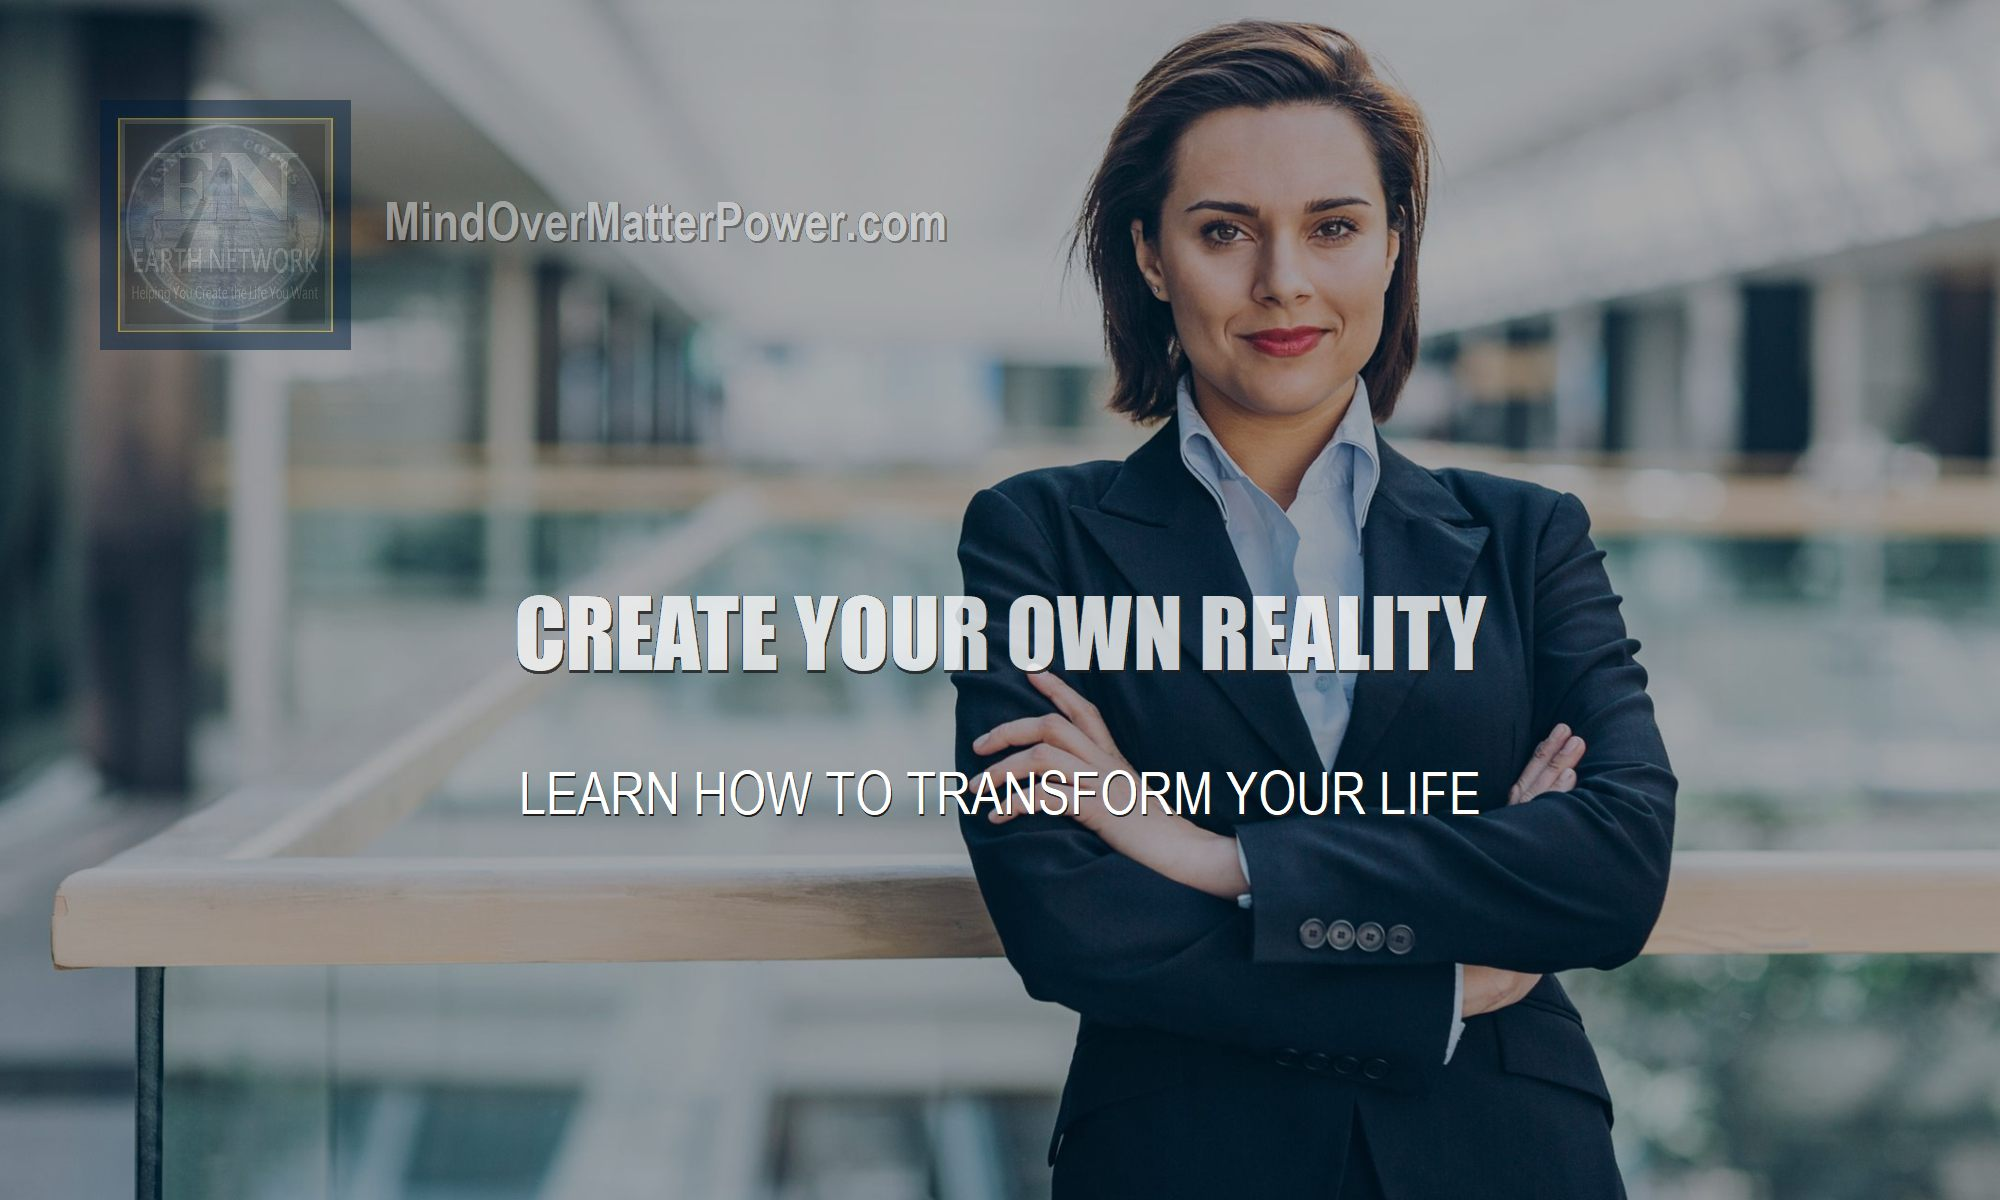 Woman-shows-how-you-can-create-your-own-reality-transform-your-life-a-new-reality